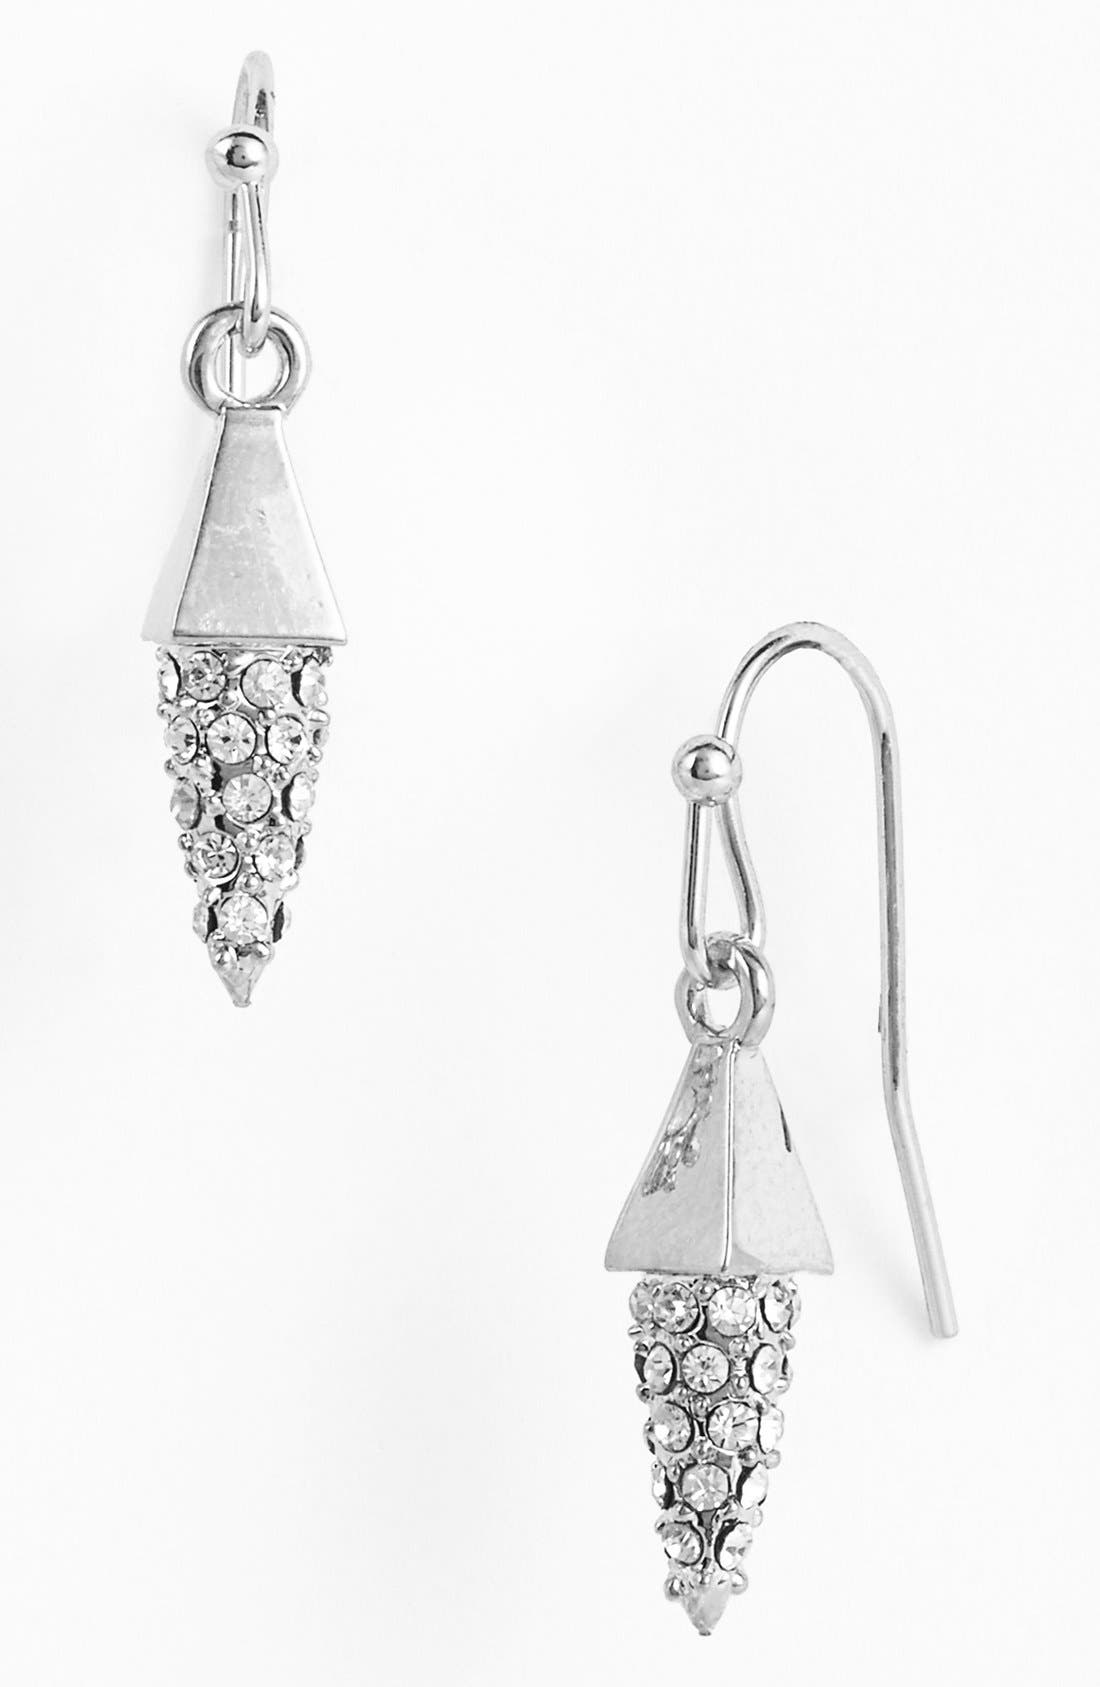 Alternate Image 1 Selected - Vince Camuto 'Flights of Fantasy' Pavé Cone Drop Earrings